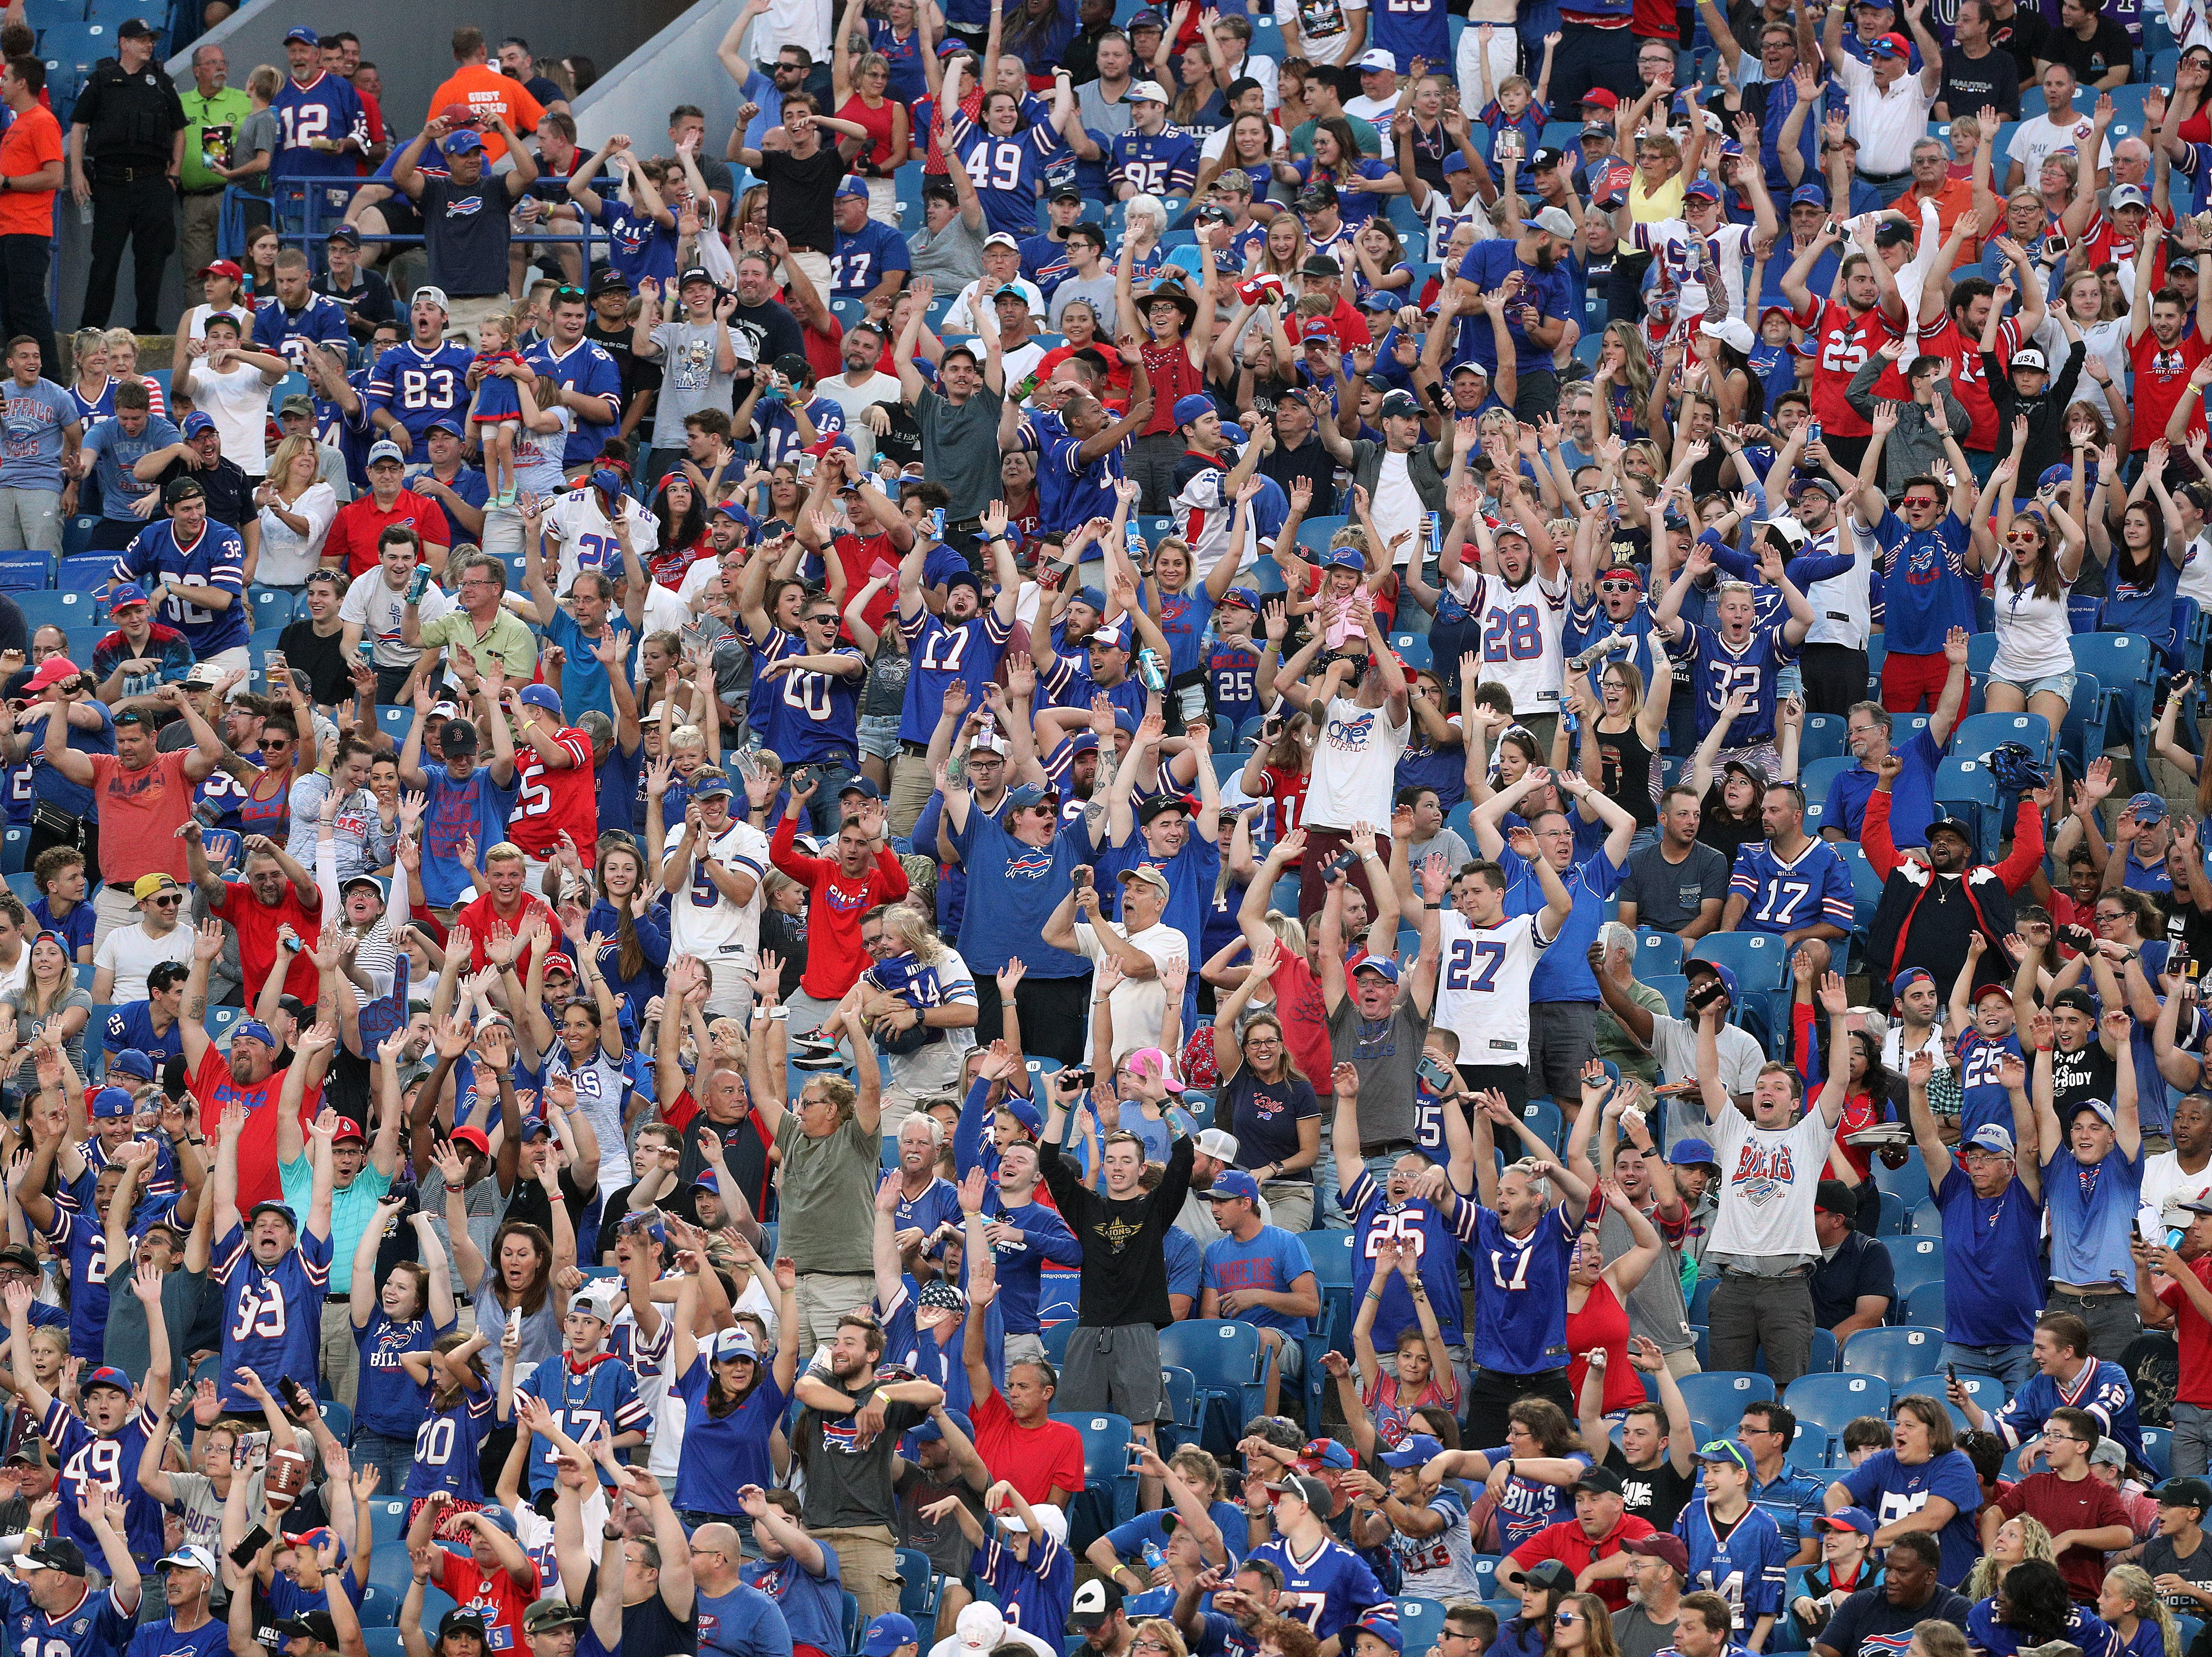 Fans join in to do the wave around New Era Field.